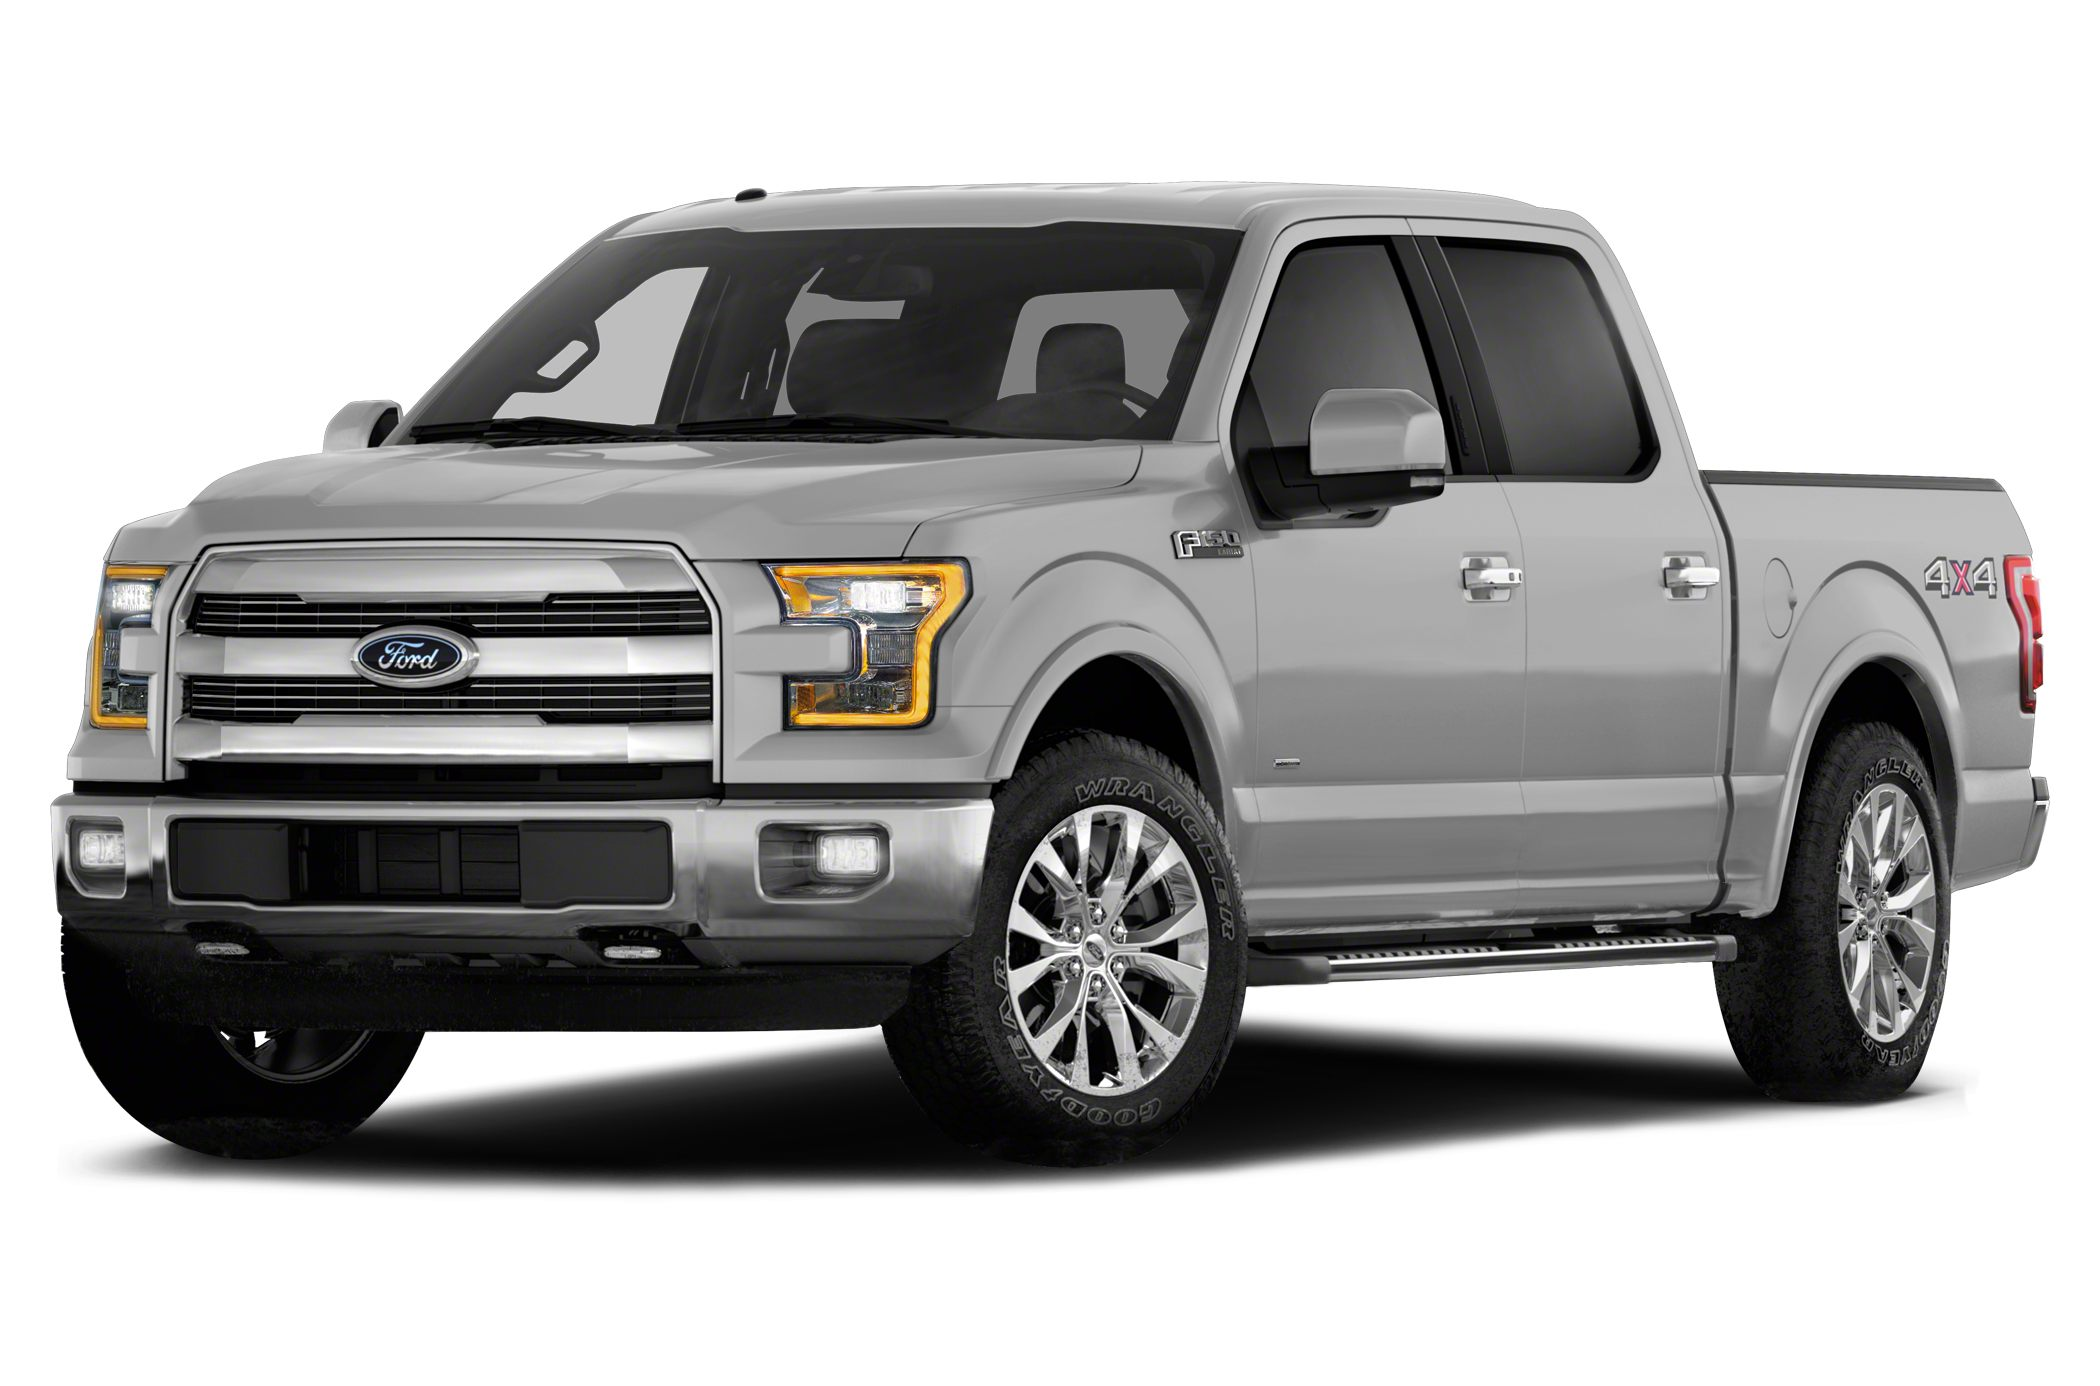 2015 Ford F150 Lariat Extended Cab Pickup for sale in Sterling for $51,210 with 0 miles.